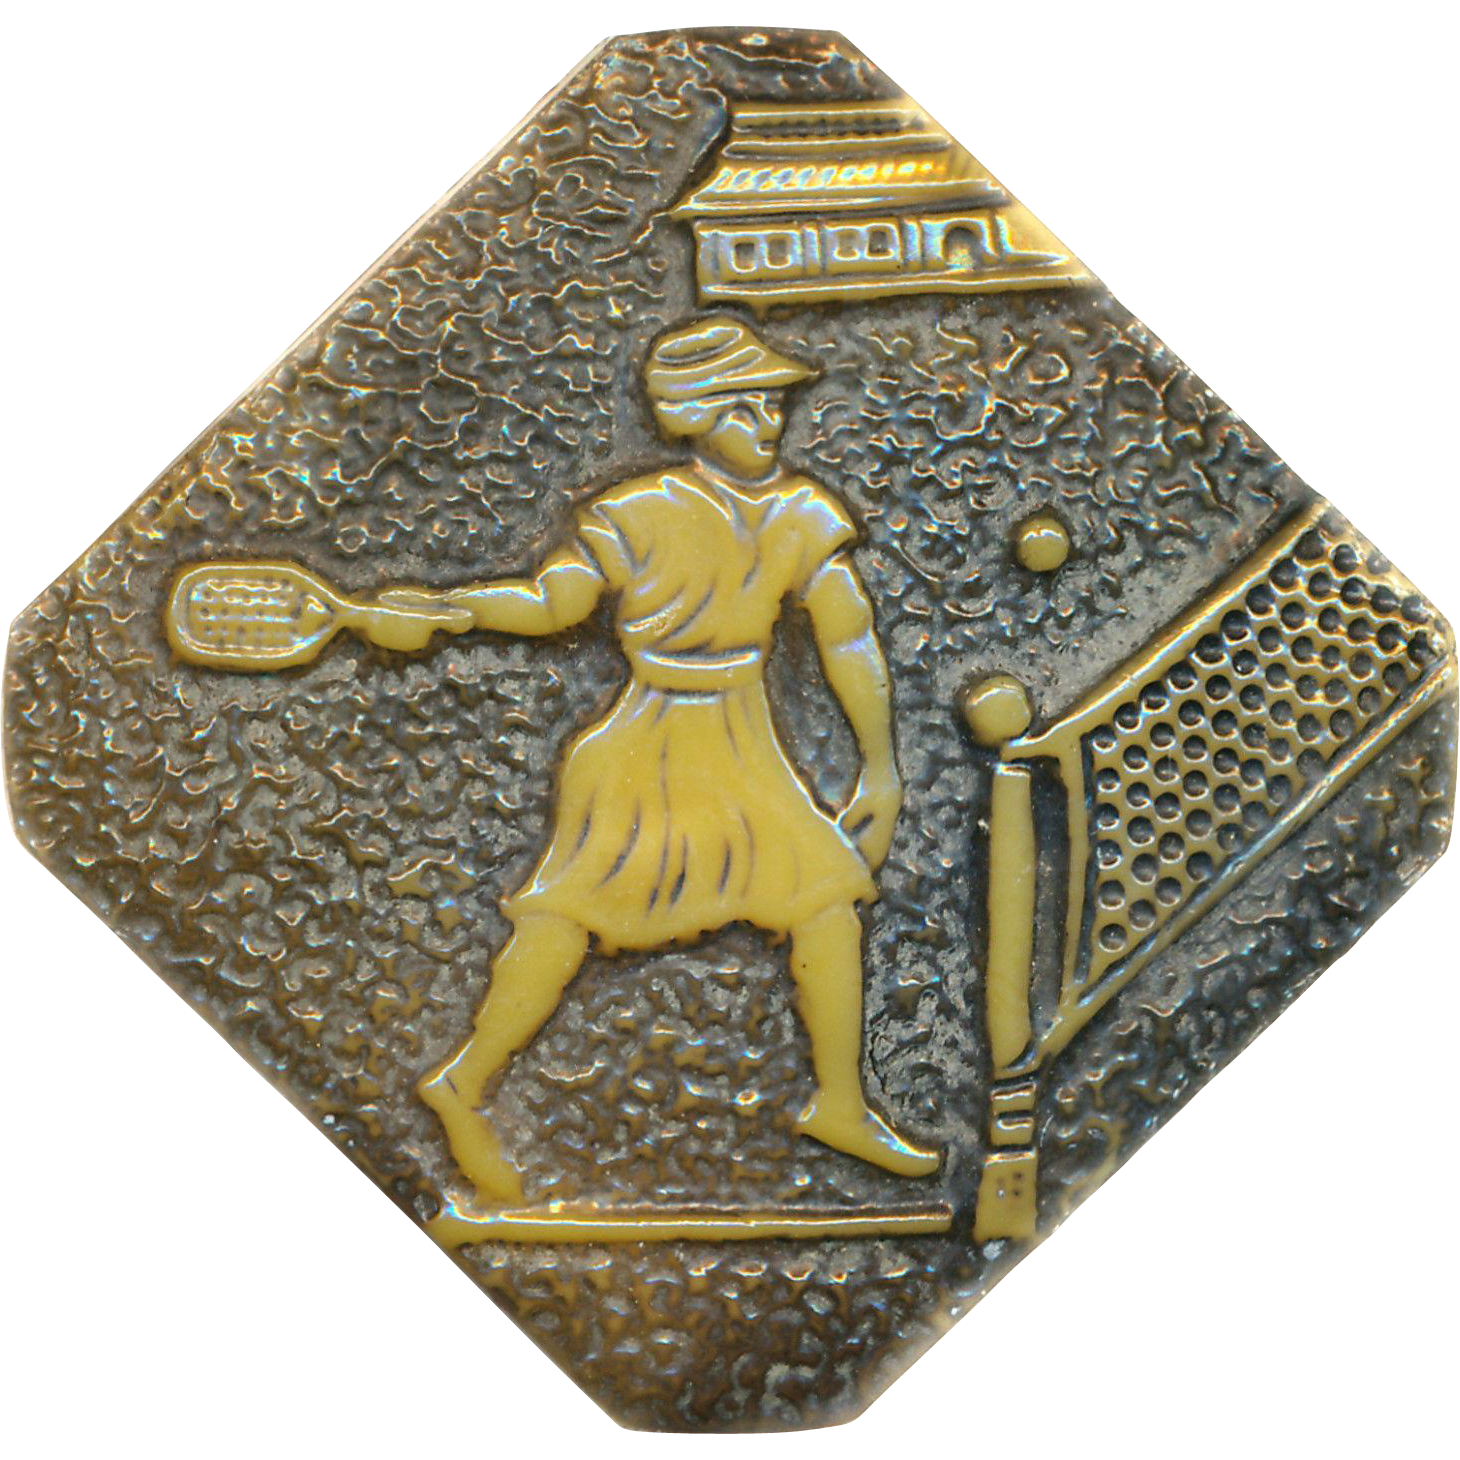 Button--Large Octagonal Ivoroid 1-Piece '30s Celluloid Lady Tennis Player